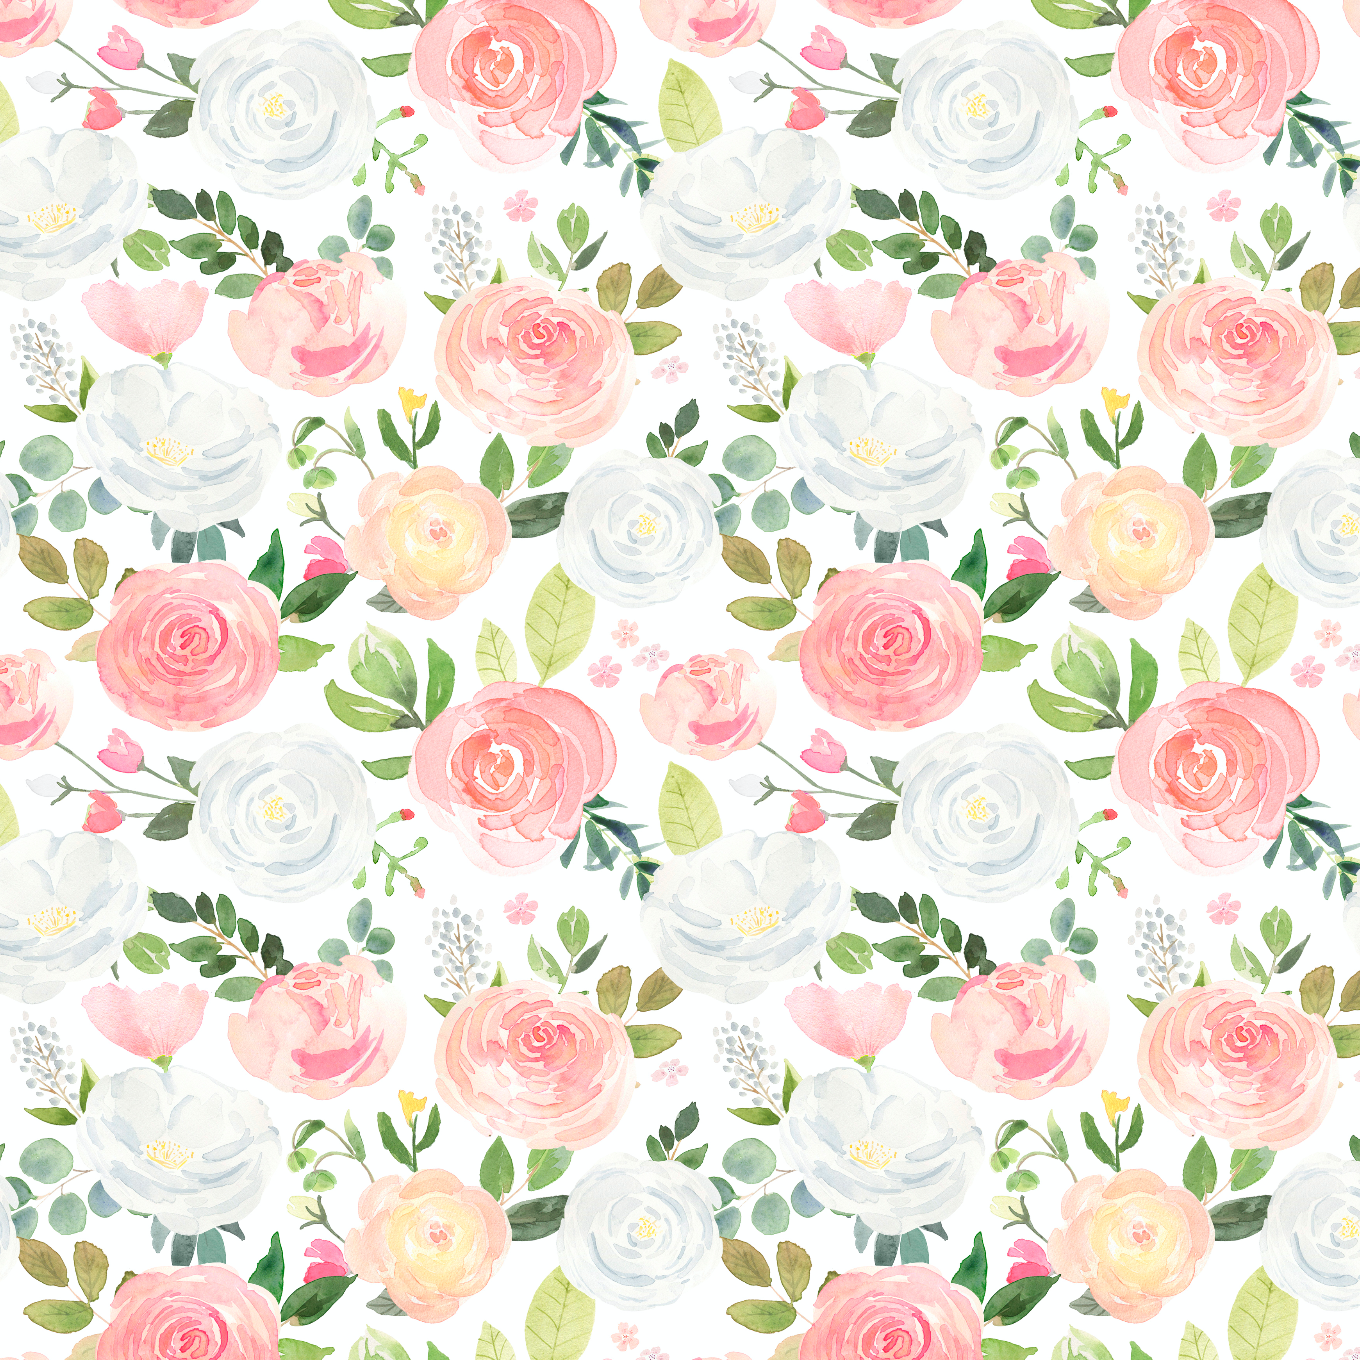 PRE ORDER Winter Blooms in White - Digital Fabric Print